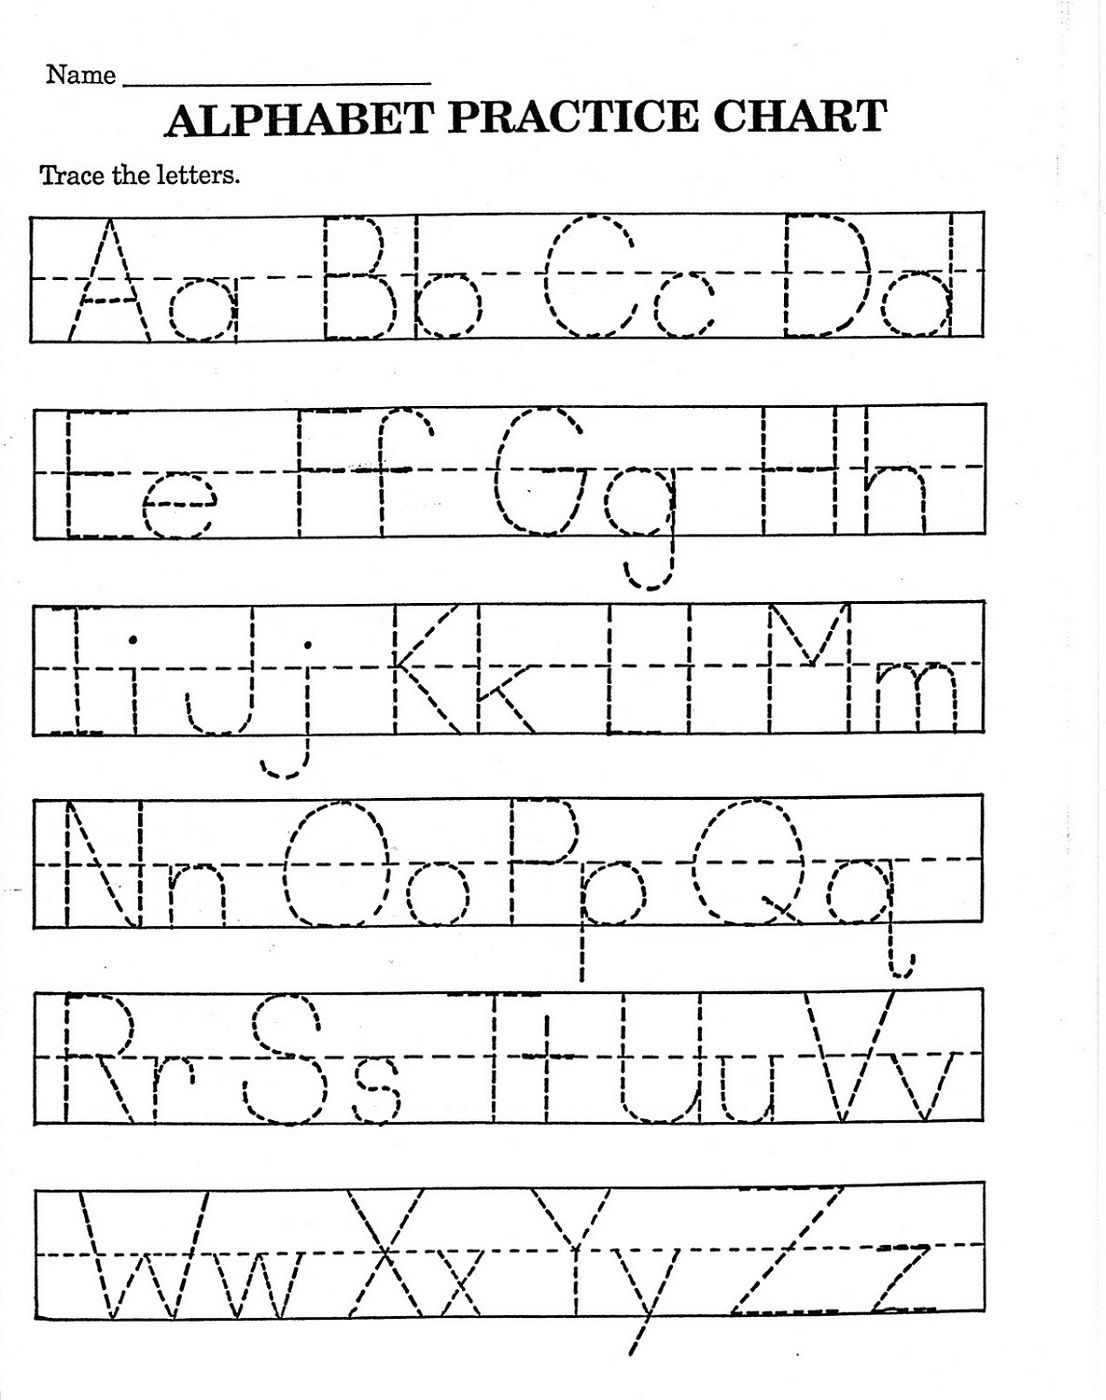 Trace Letter Worksheets Free | Alphabet tracing worksheets ...